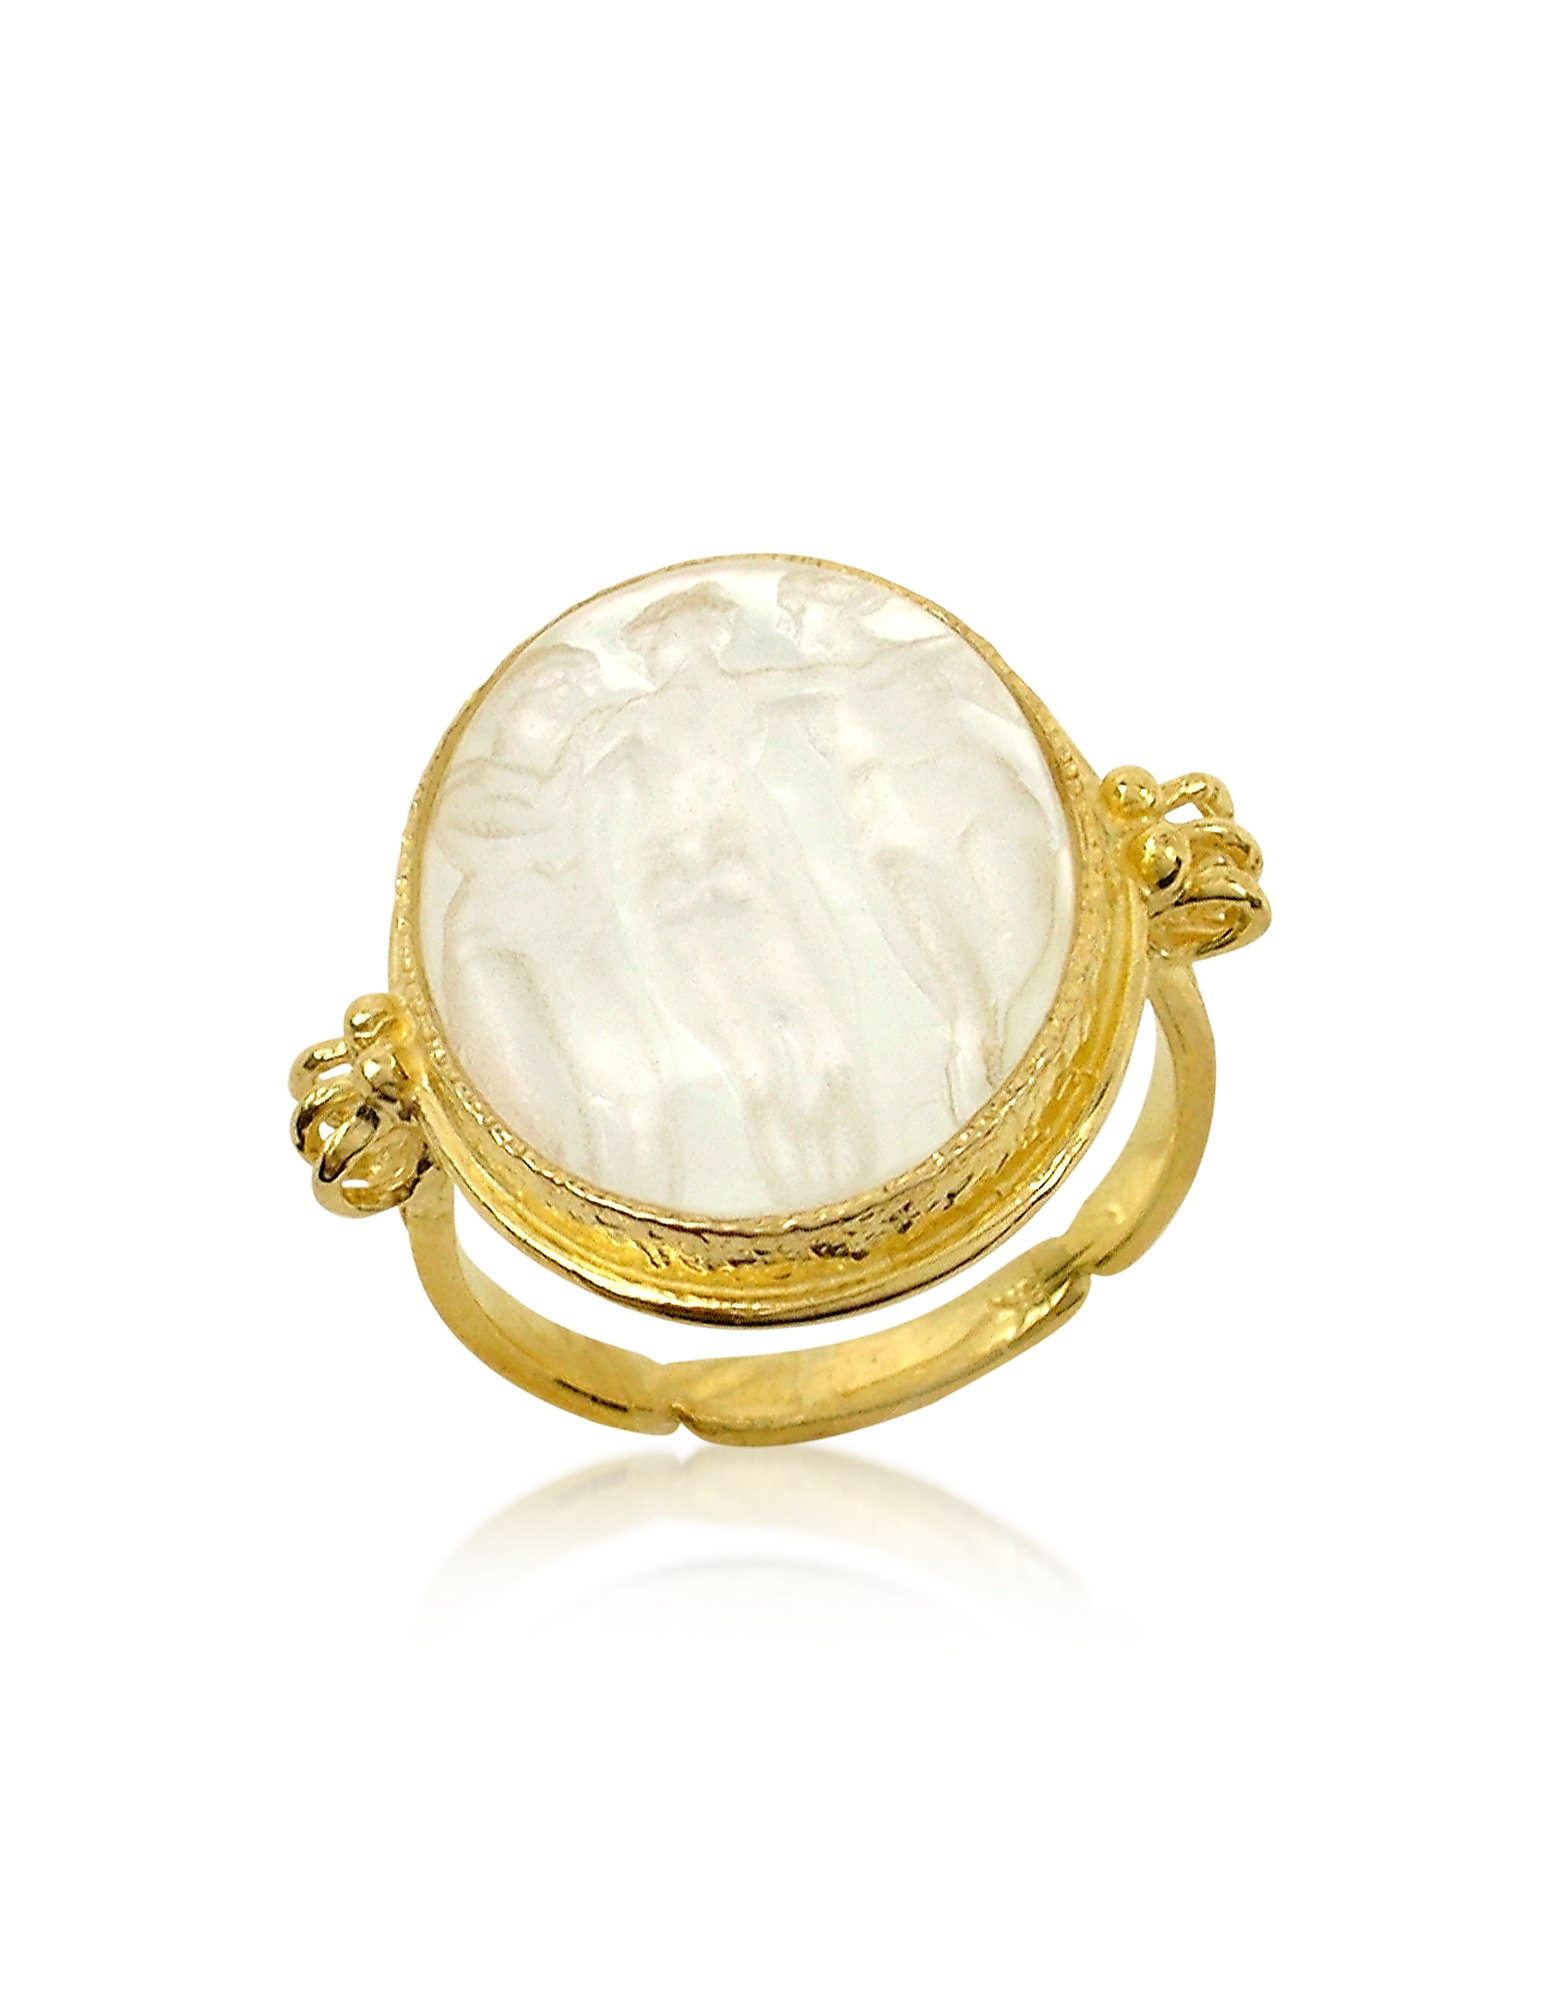 Tagliamonte Cameo, Three Graces - 18K Gold White Mother of Pearl Cameo Ring